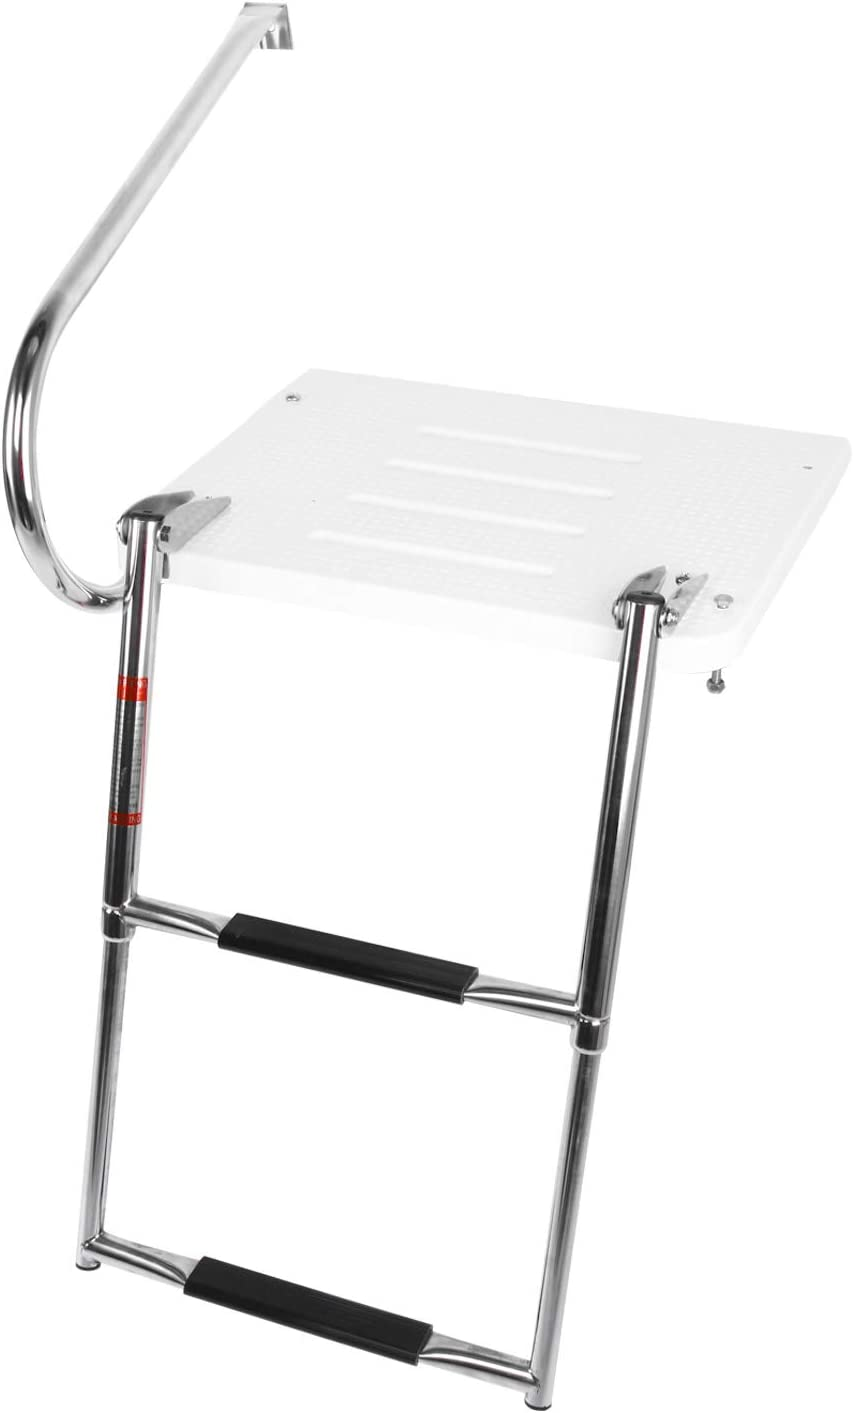 DasMarine Universal Outboard Fiberglass Swim Platform Under Mount Fold Down 2 Step 316 Stainless Steel Ladder with One Handrails(Mounting Screws are Included)